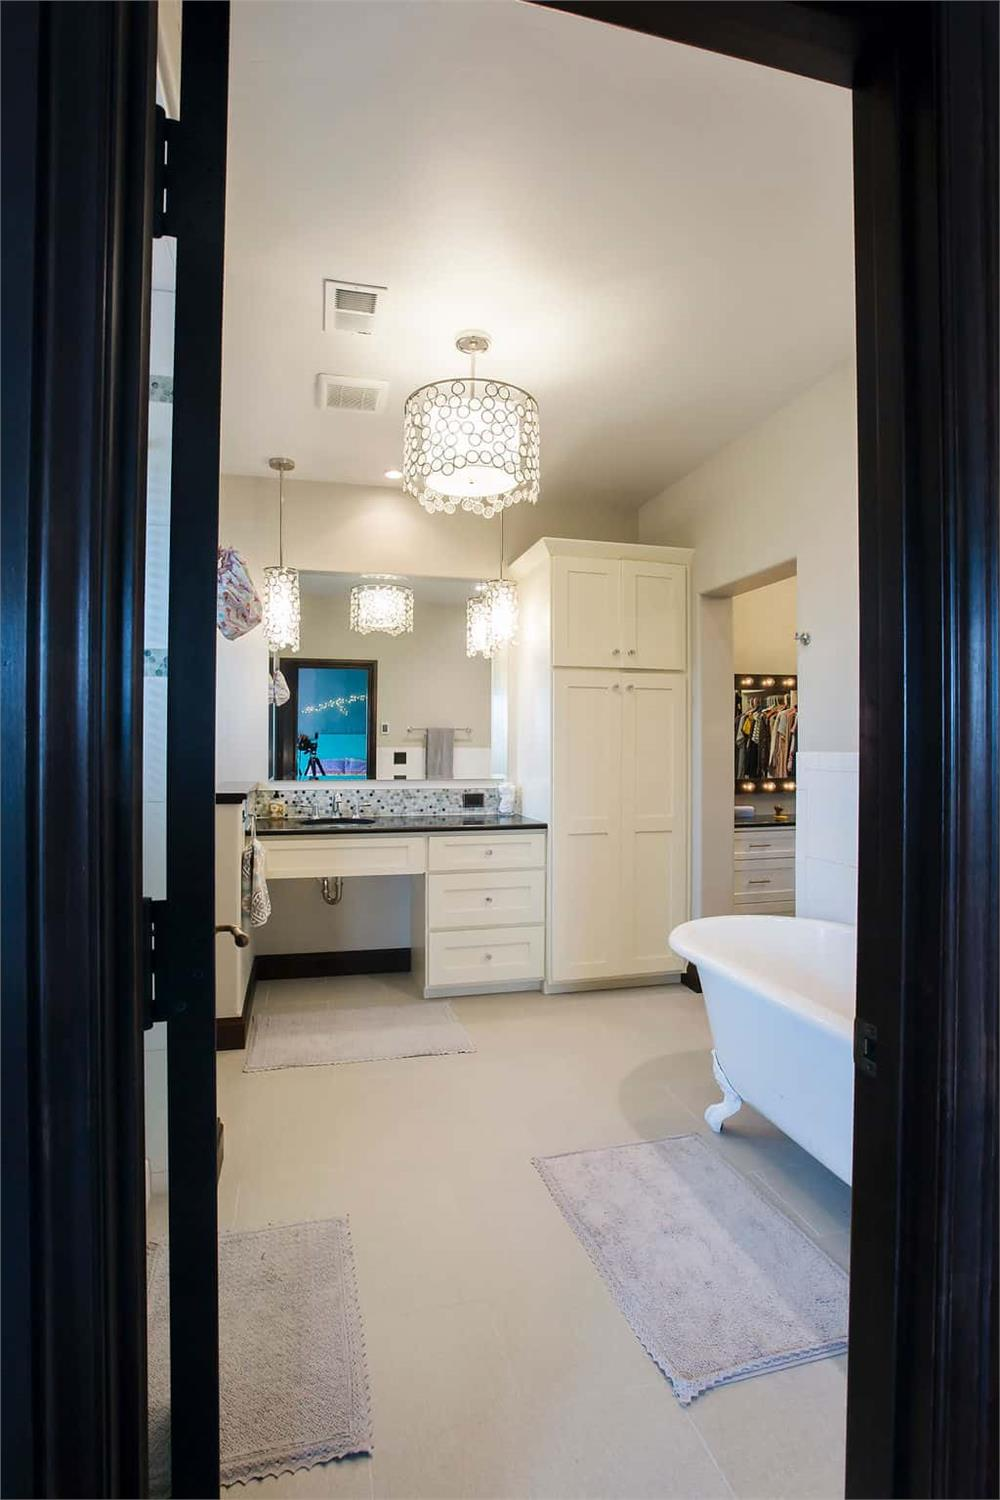 Master bathroom with hanging lights at the mirrors and a large hanging ambient light fixture